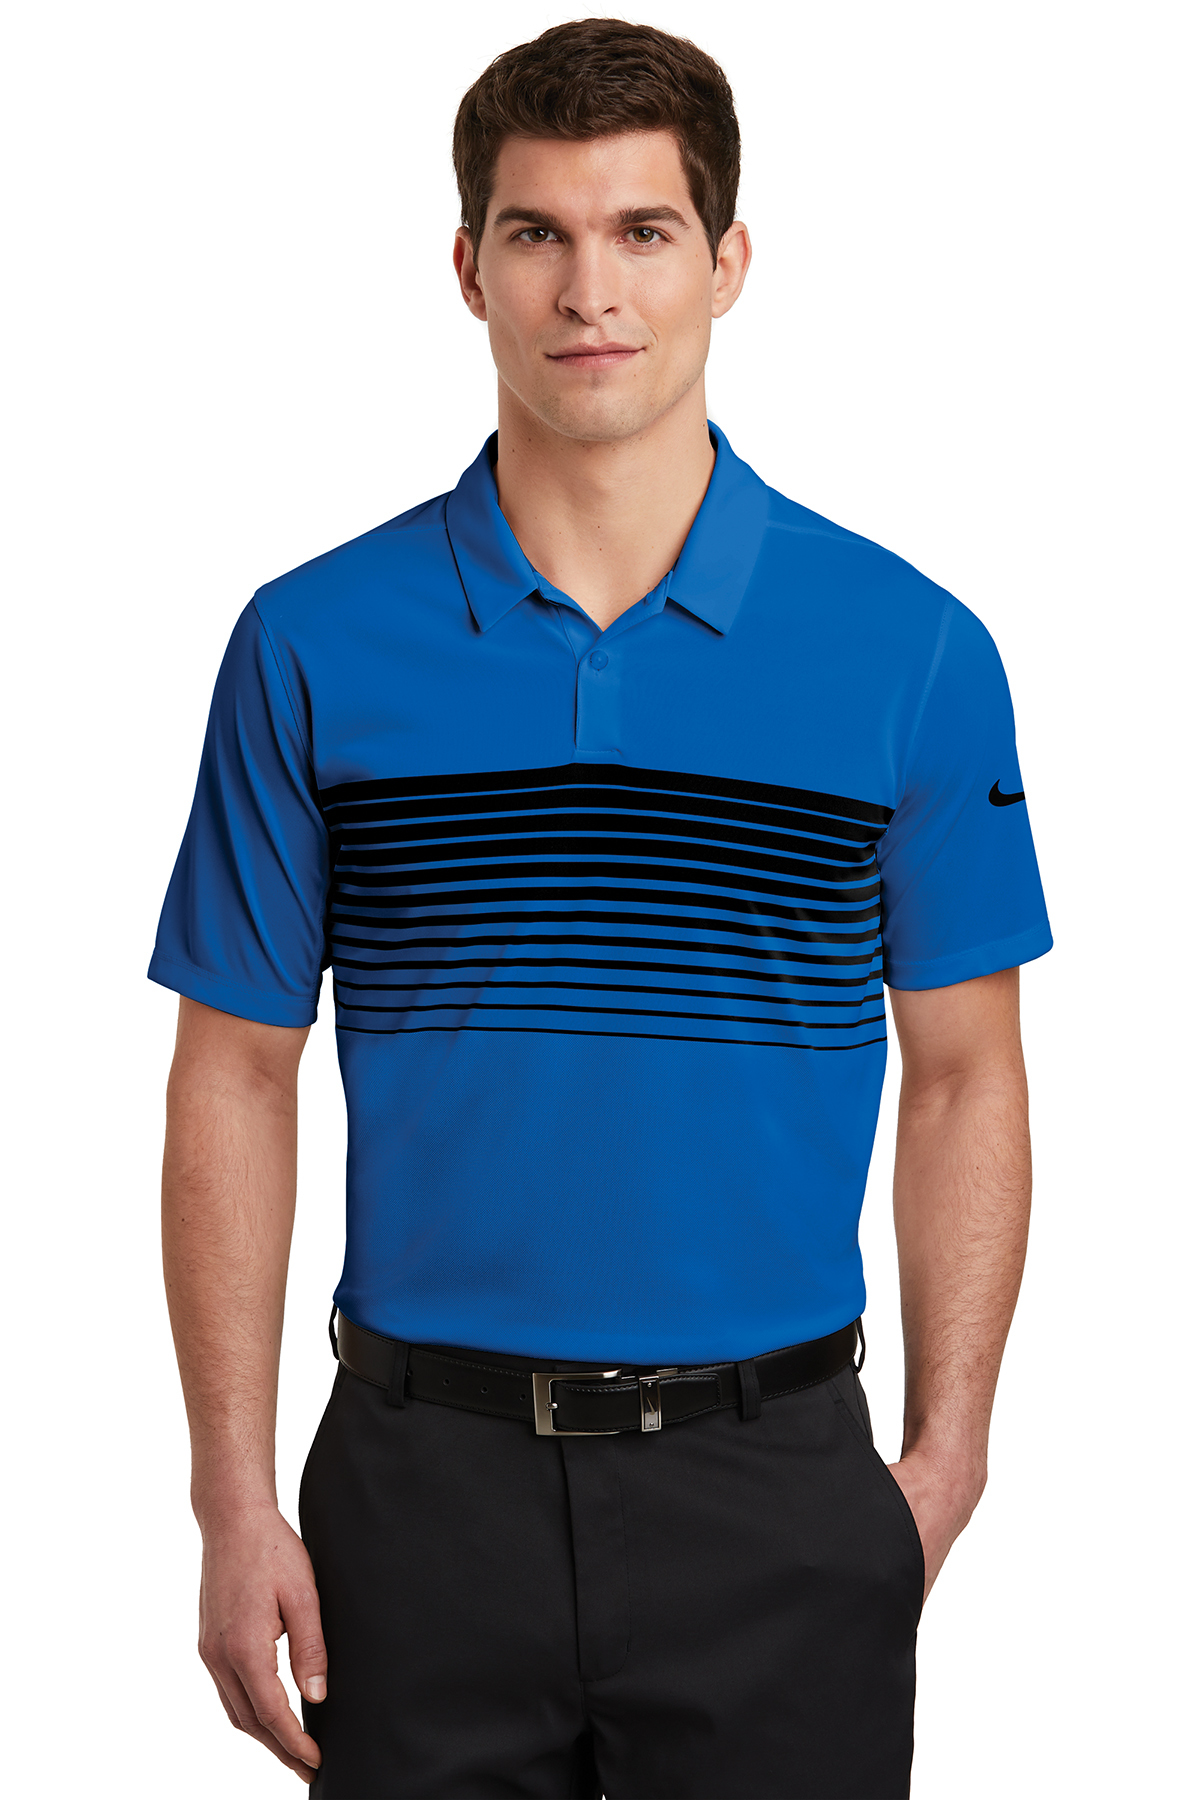 Wholesale Nike Golf Custom Imprinted With Screen Printing And